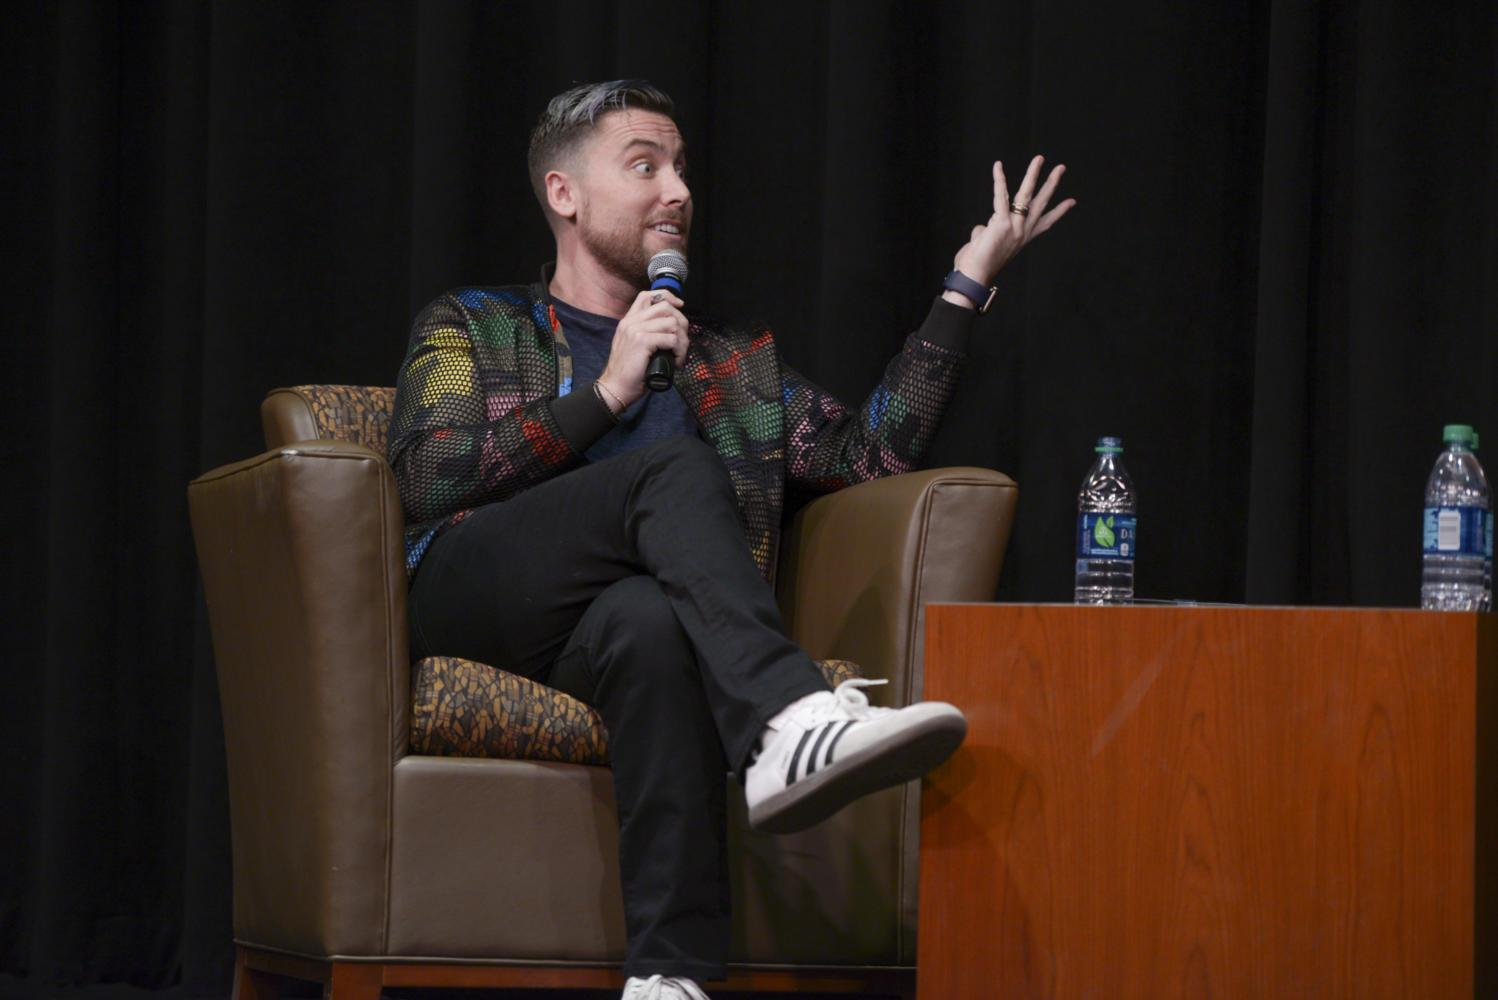 Musician and former NSYNC member Lance Bass discusses his experiences in the music industry as a part of Rainbow Alliance's Pride Week. (Photo by Divyanka Bhatia | Staff Photographer)